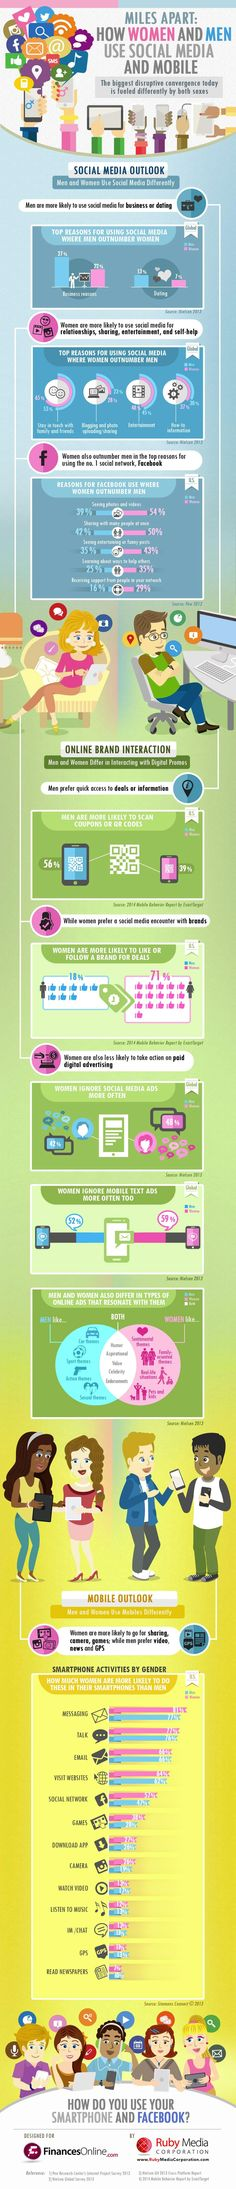 Smartphone and Social Media Usage: Men vs. Women (Infographic)